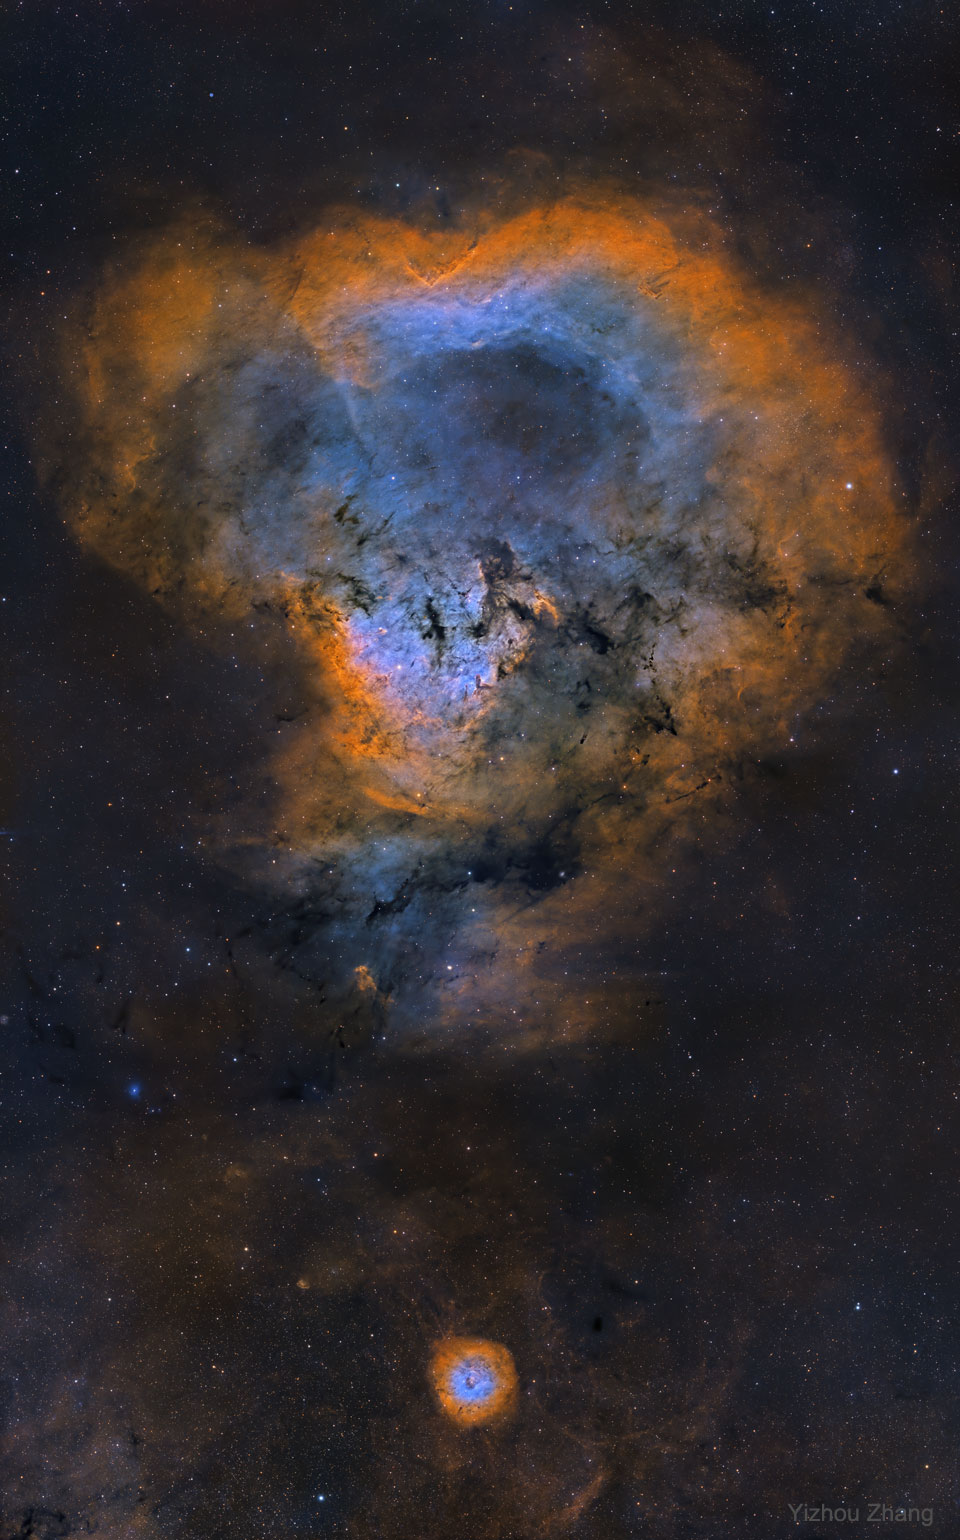 The picture shows a NGC 7822, known informally as  the Cosmic Question Mark Nebula.  Please see the explanation for more detailed information.